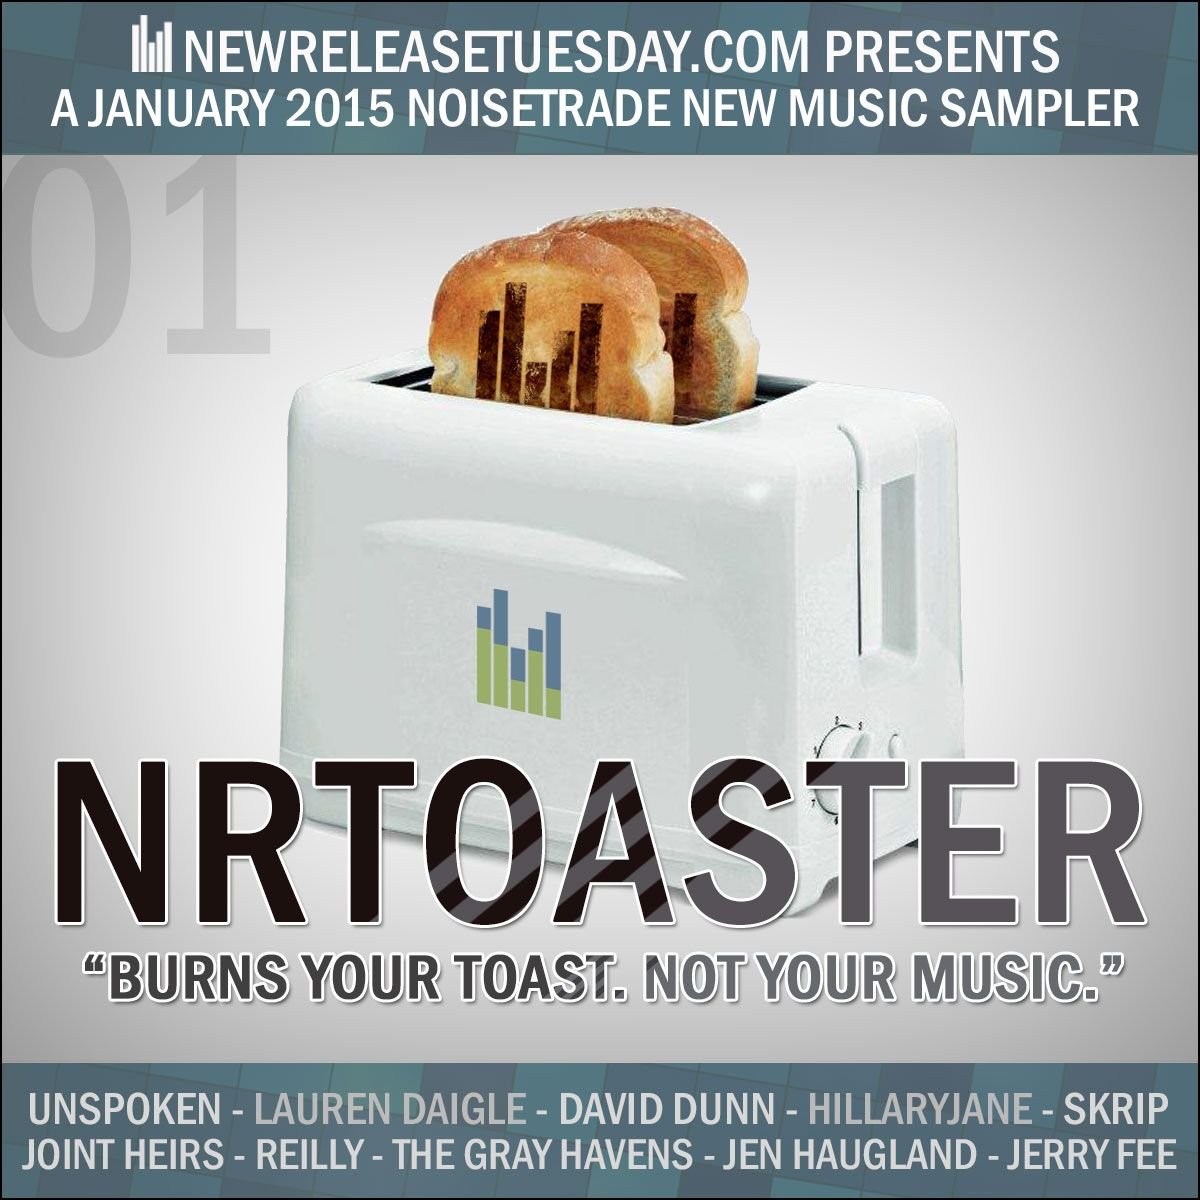 """ALL FREE MUSIC!  NRToaster: A Jan 2015 NoiseTrade Sampler From NewReleaseTuesday.com  My song """"So Hard To Find"""" from my Where I Am album is in the January 2015 NoiseTrade Sampler from New Release Tuesday! Enjoy! - Jen"""